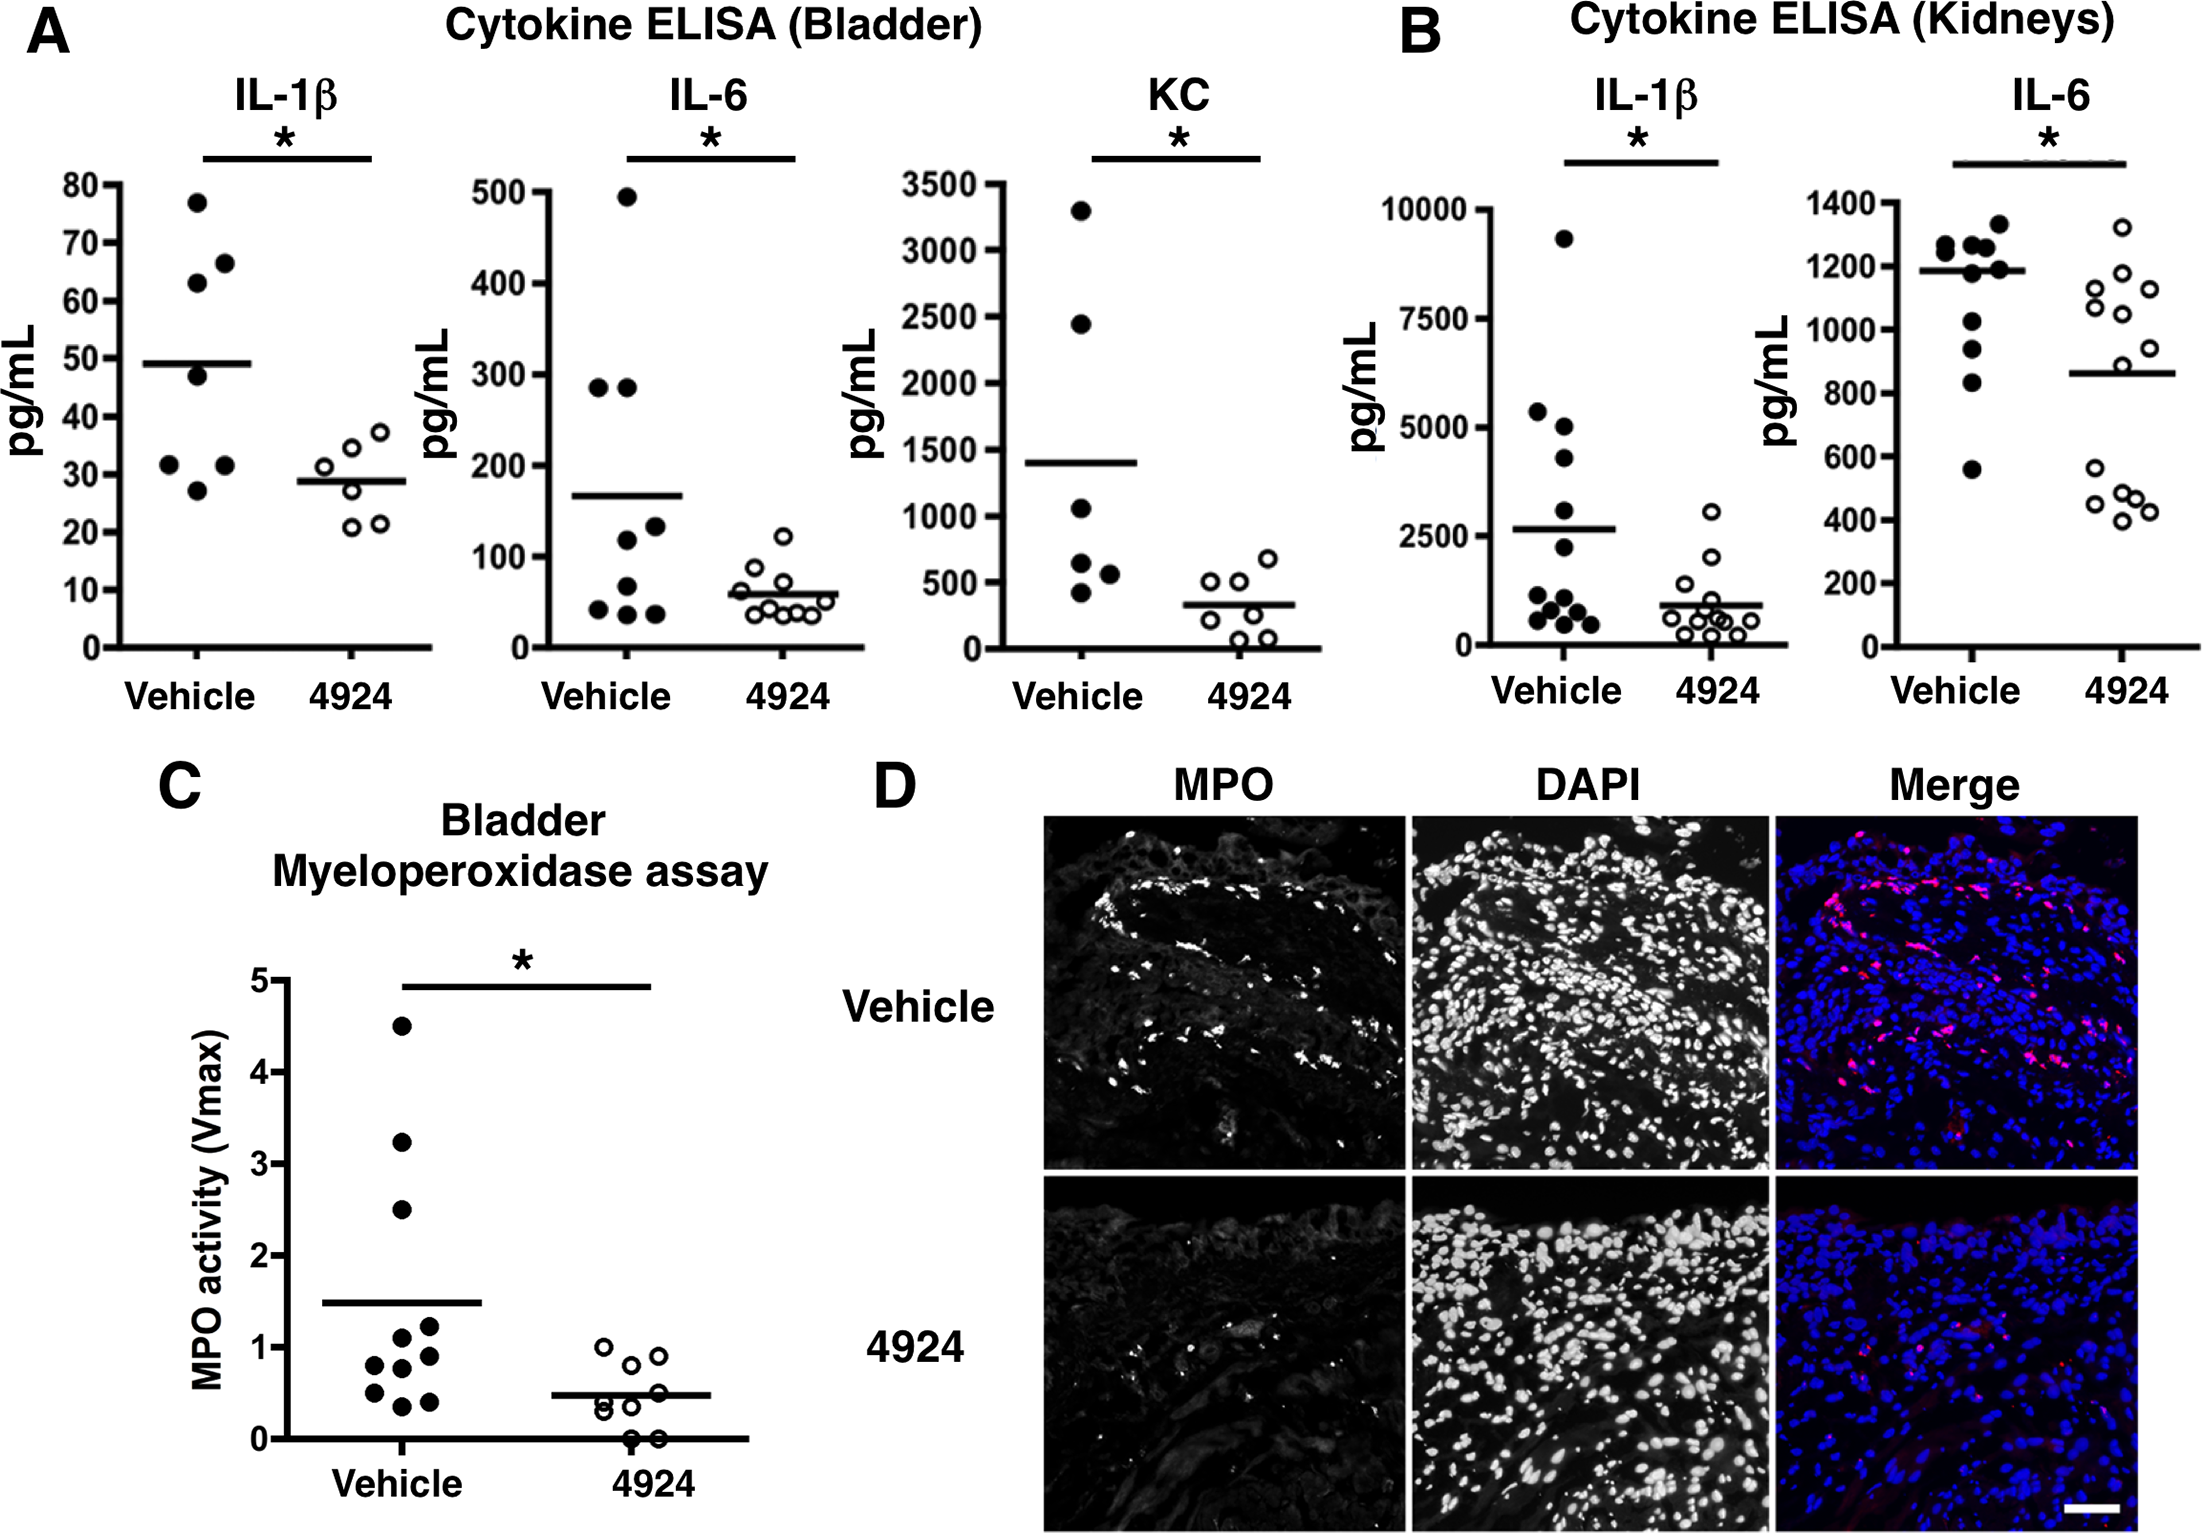 Reduced UPEC-mediated inflammatory damage to bladder epithelium with AKB-4924 pretreatment.